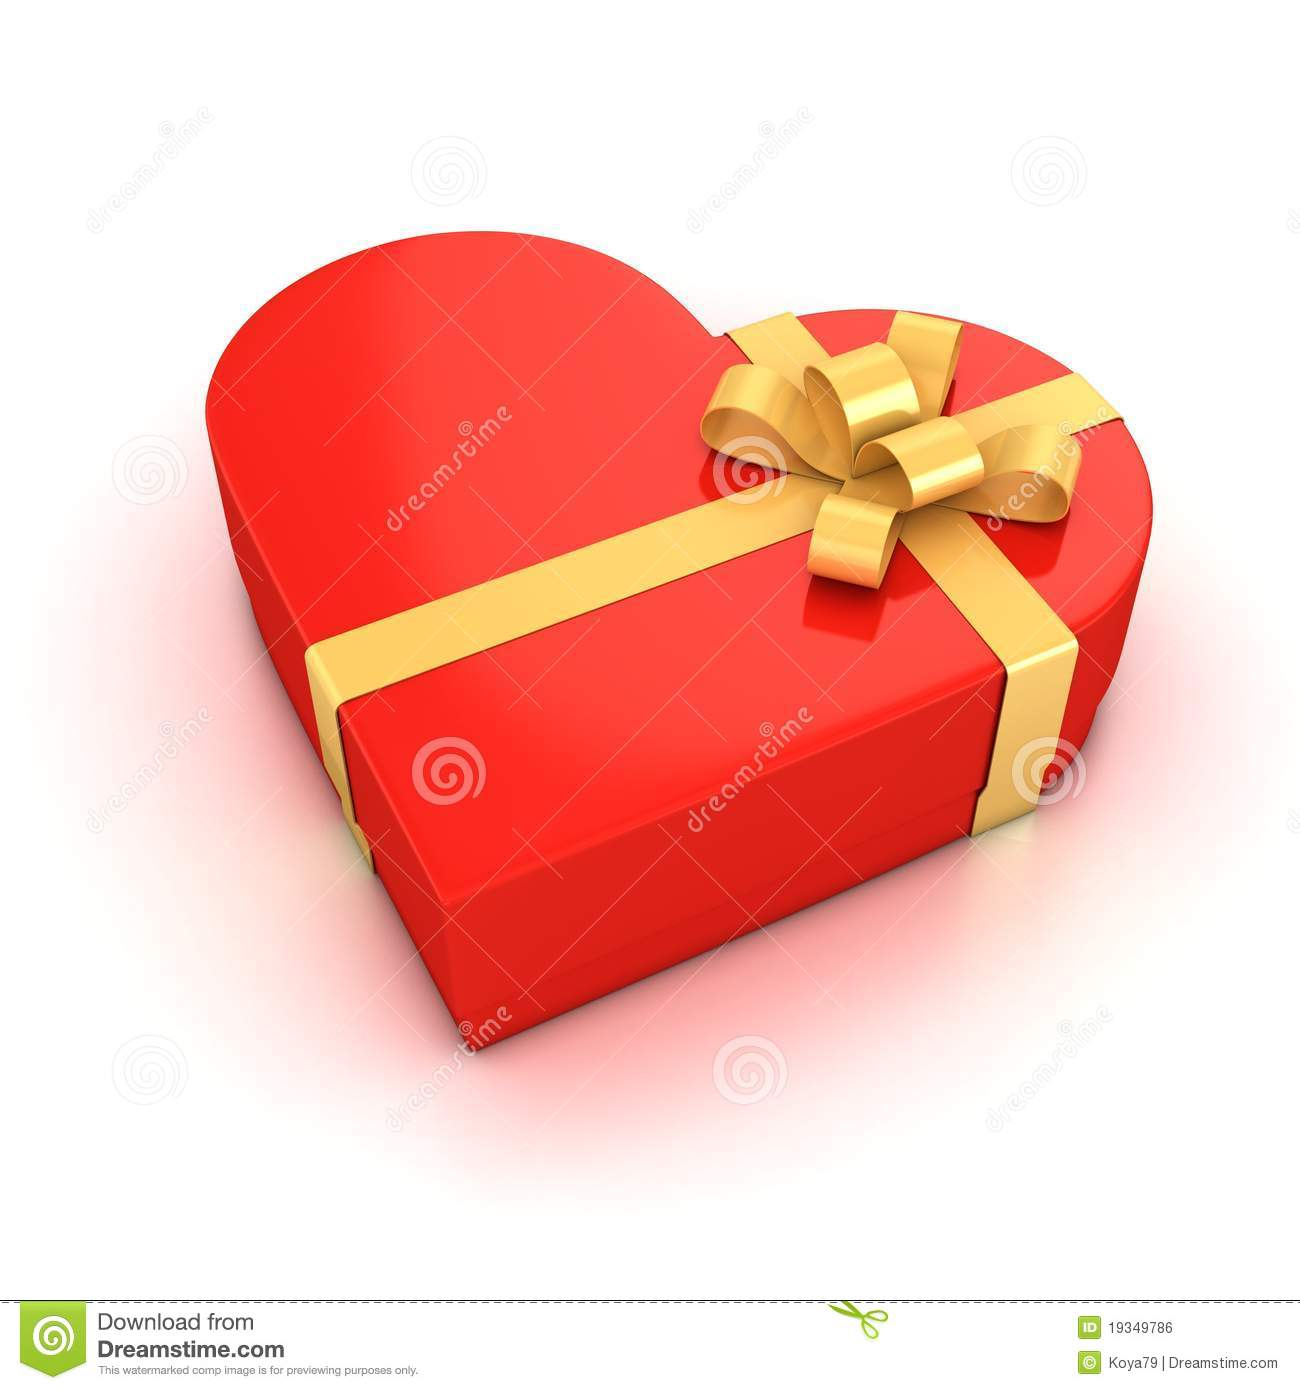 Red Heart Shaped Gift Box Royalty Free Stock Image - Image: 19349786